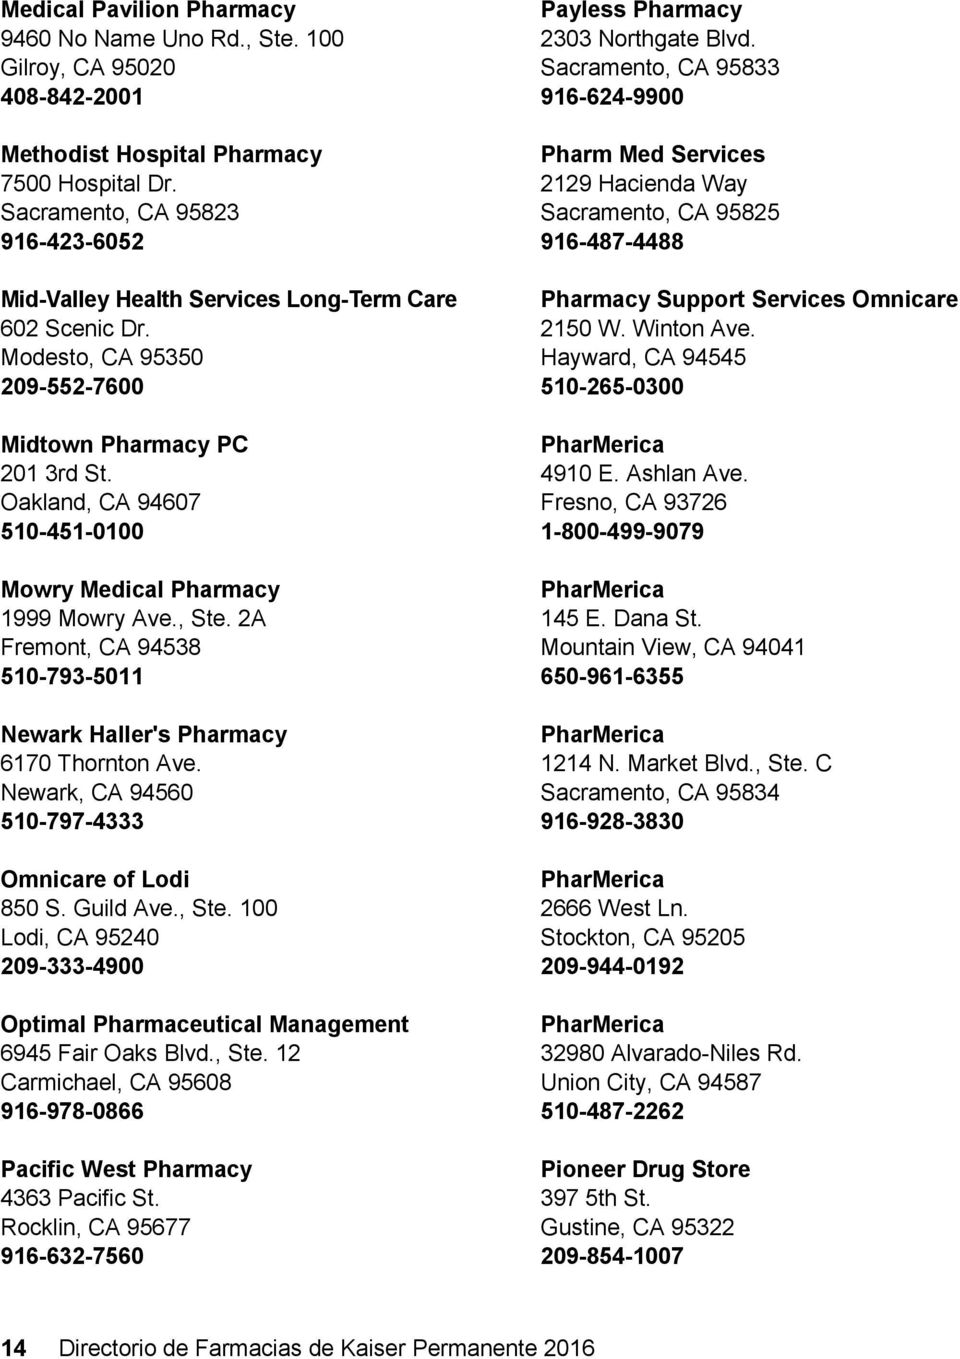 Oakland, CA 94607 510-451-0100 Mowry Medical Pharmacy 1999 Mowry Ave., Ste. 2A Fremont, CA 94538 510-793-5011 Newark Haller's Pharmacy 6170 Thornton Ave.